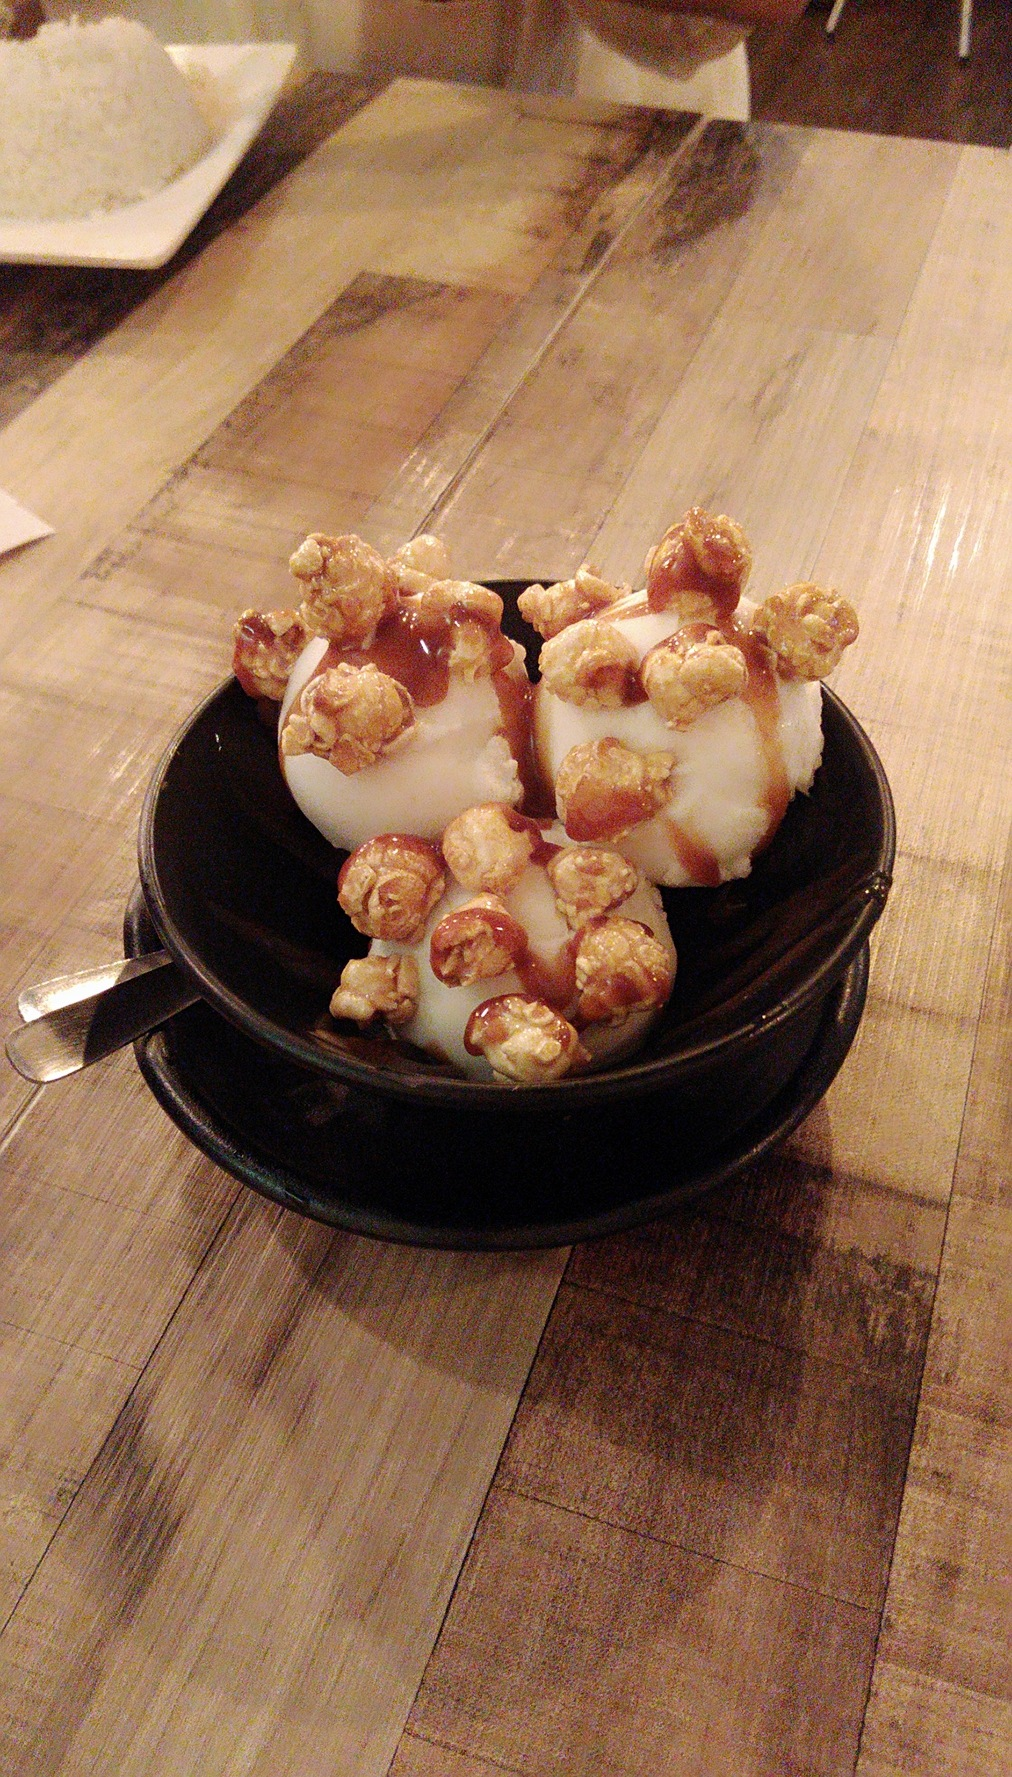 Coconut ice-cream with yummy popcorns by Xuan